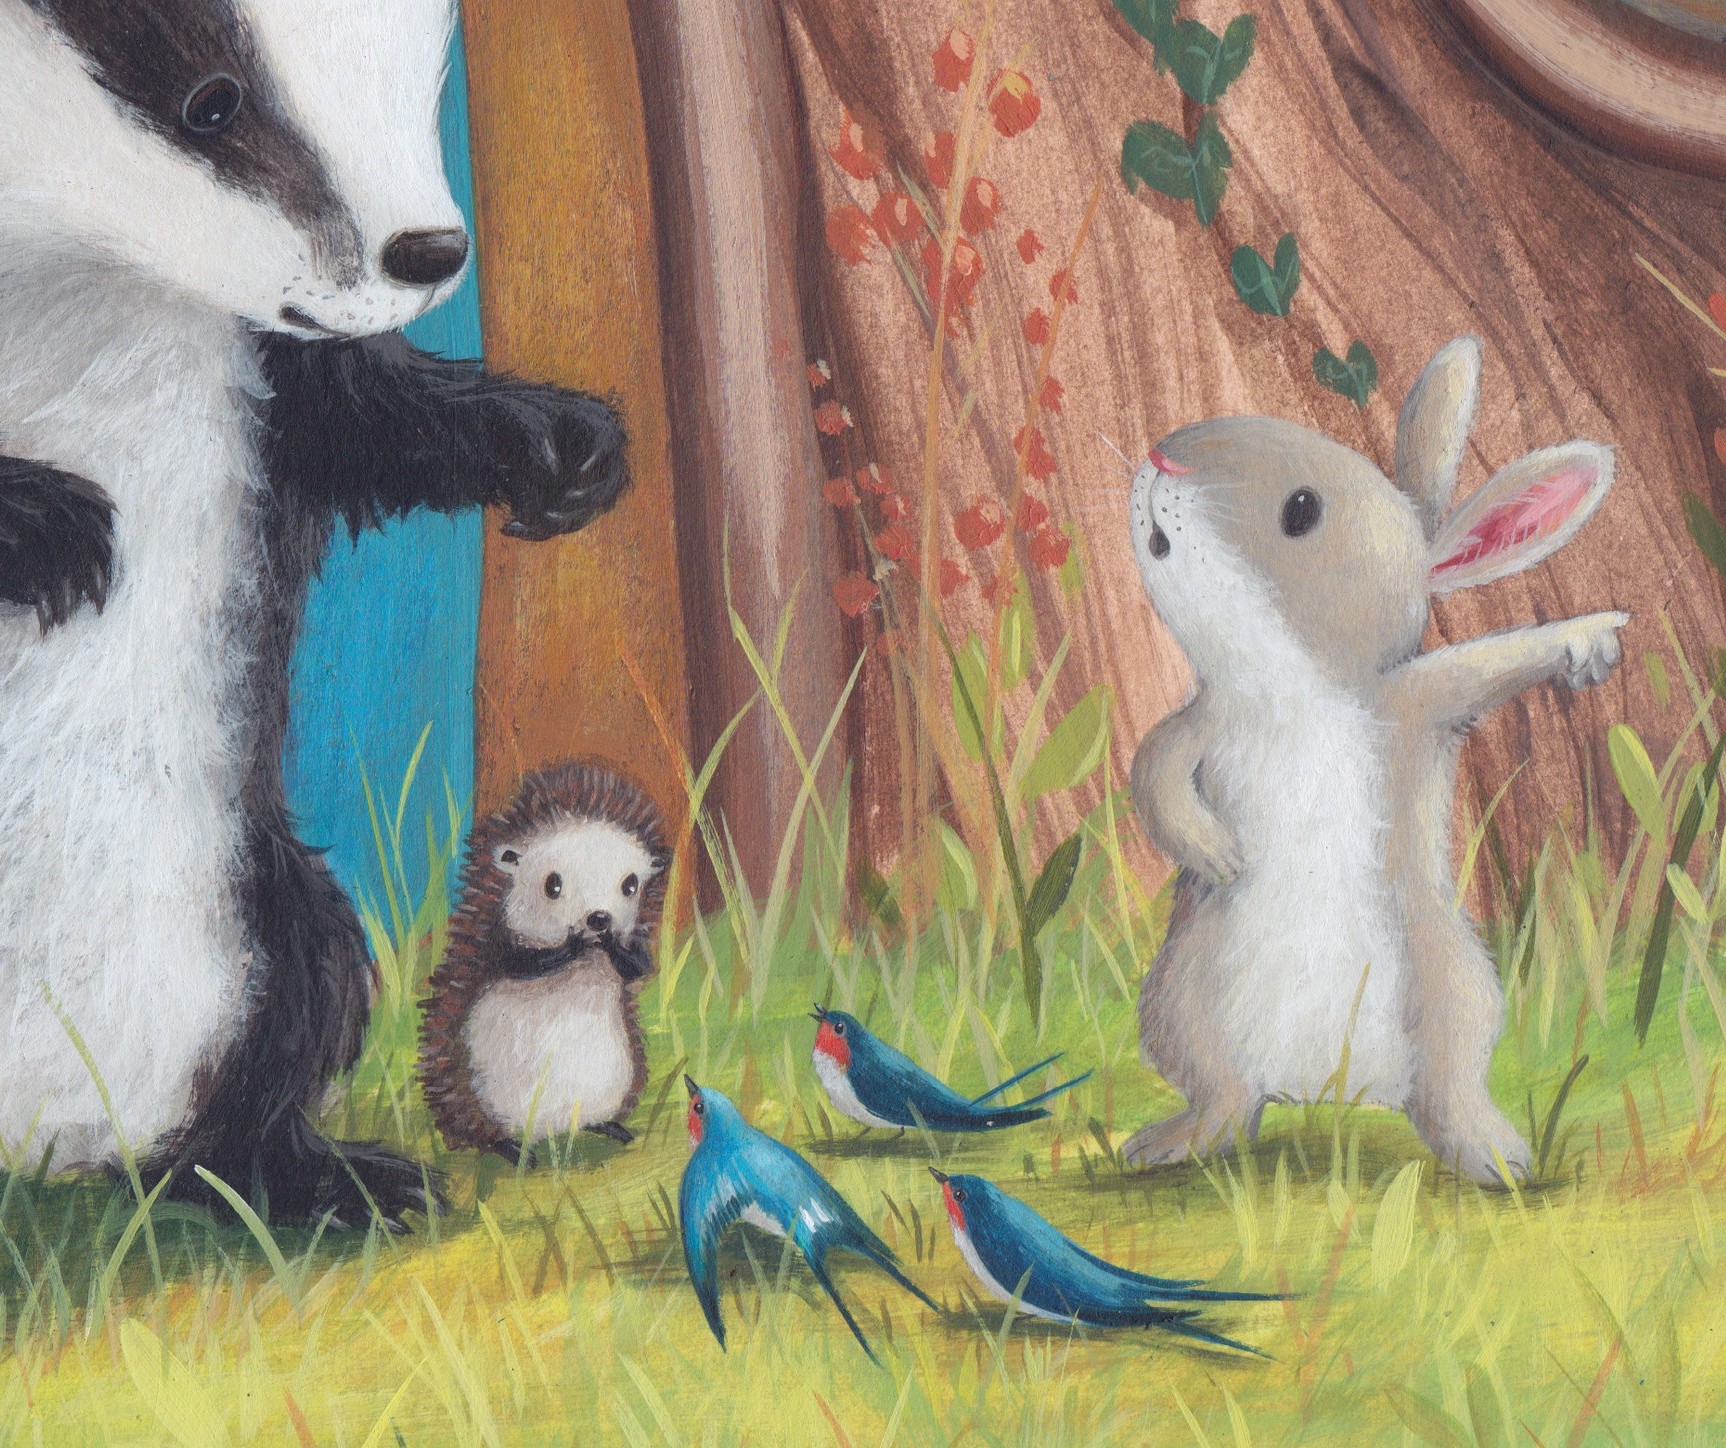 A snippet from my next book about Badger and his friends. I can't show anymore than this .